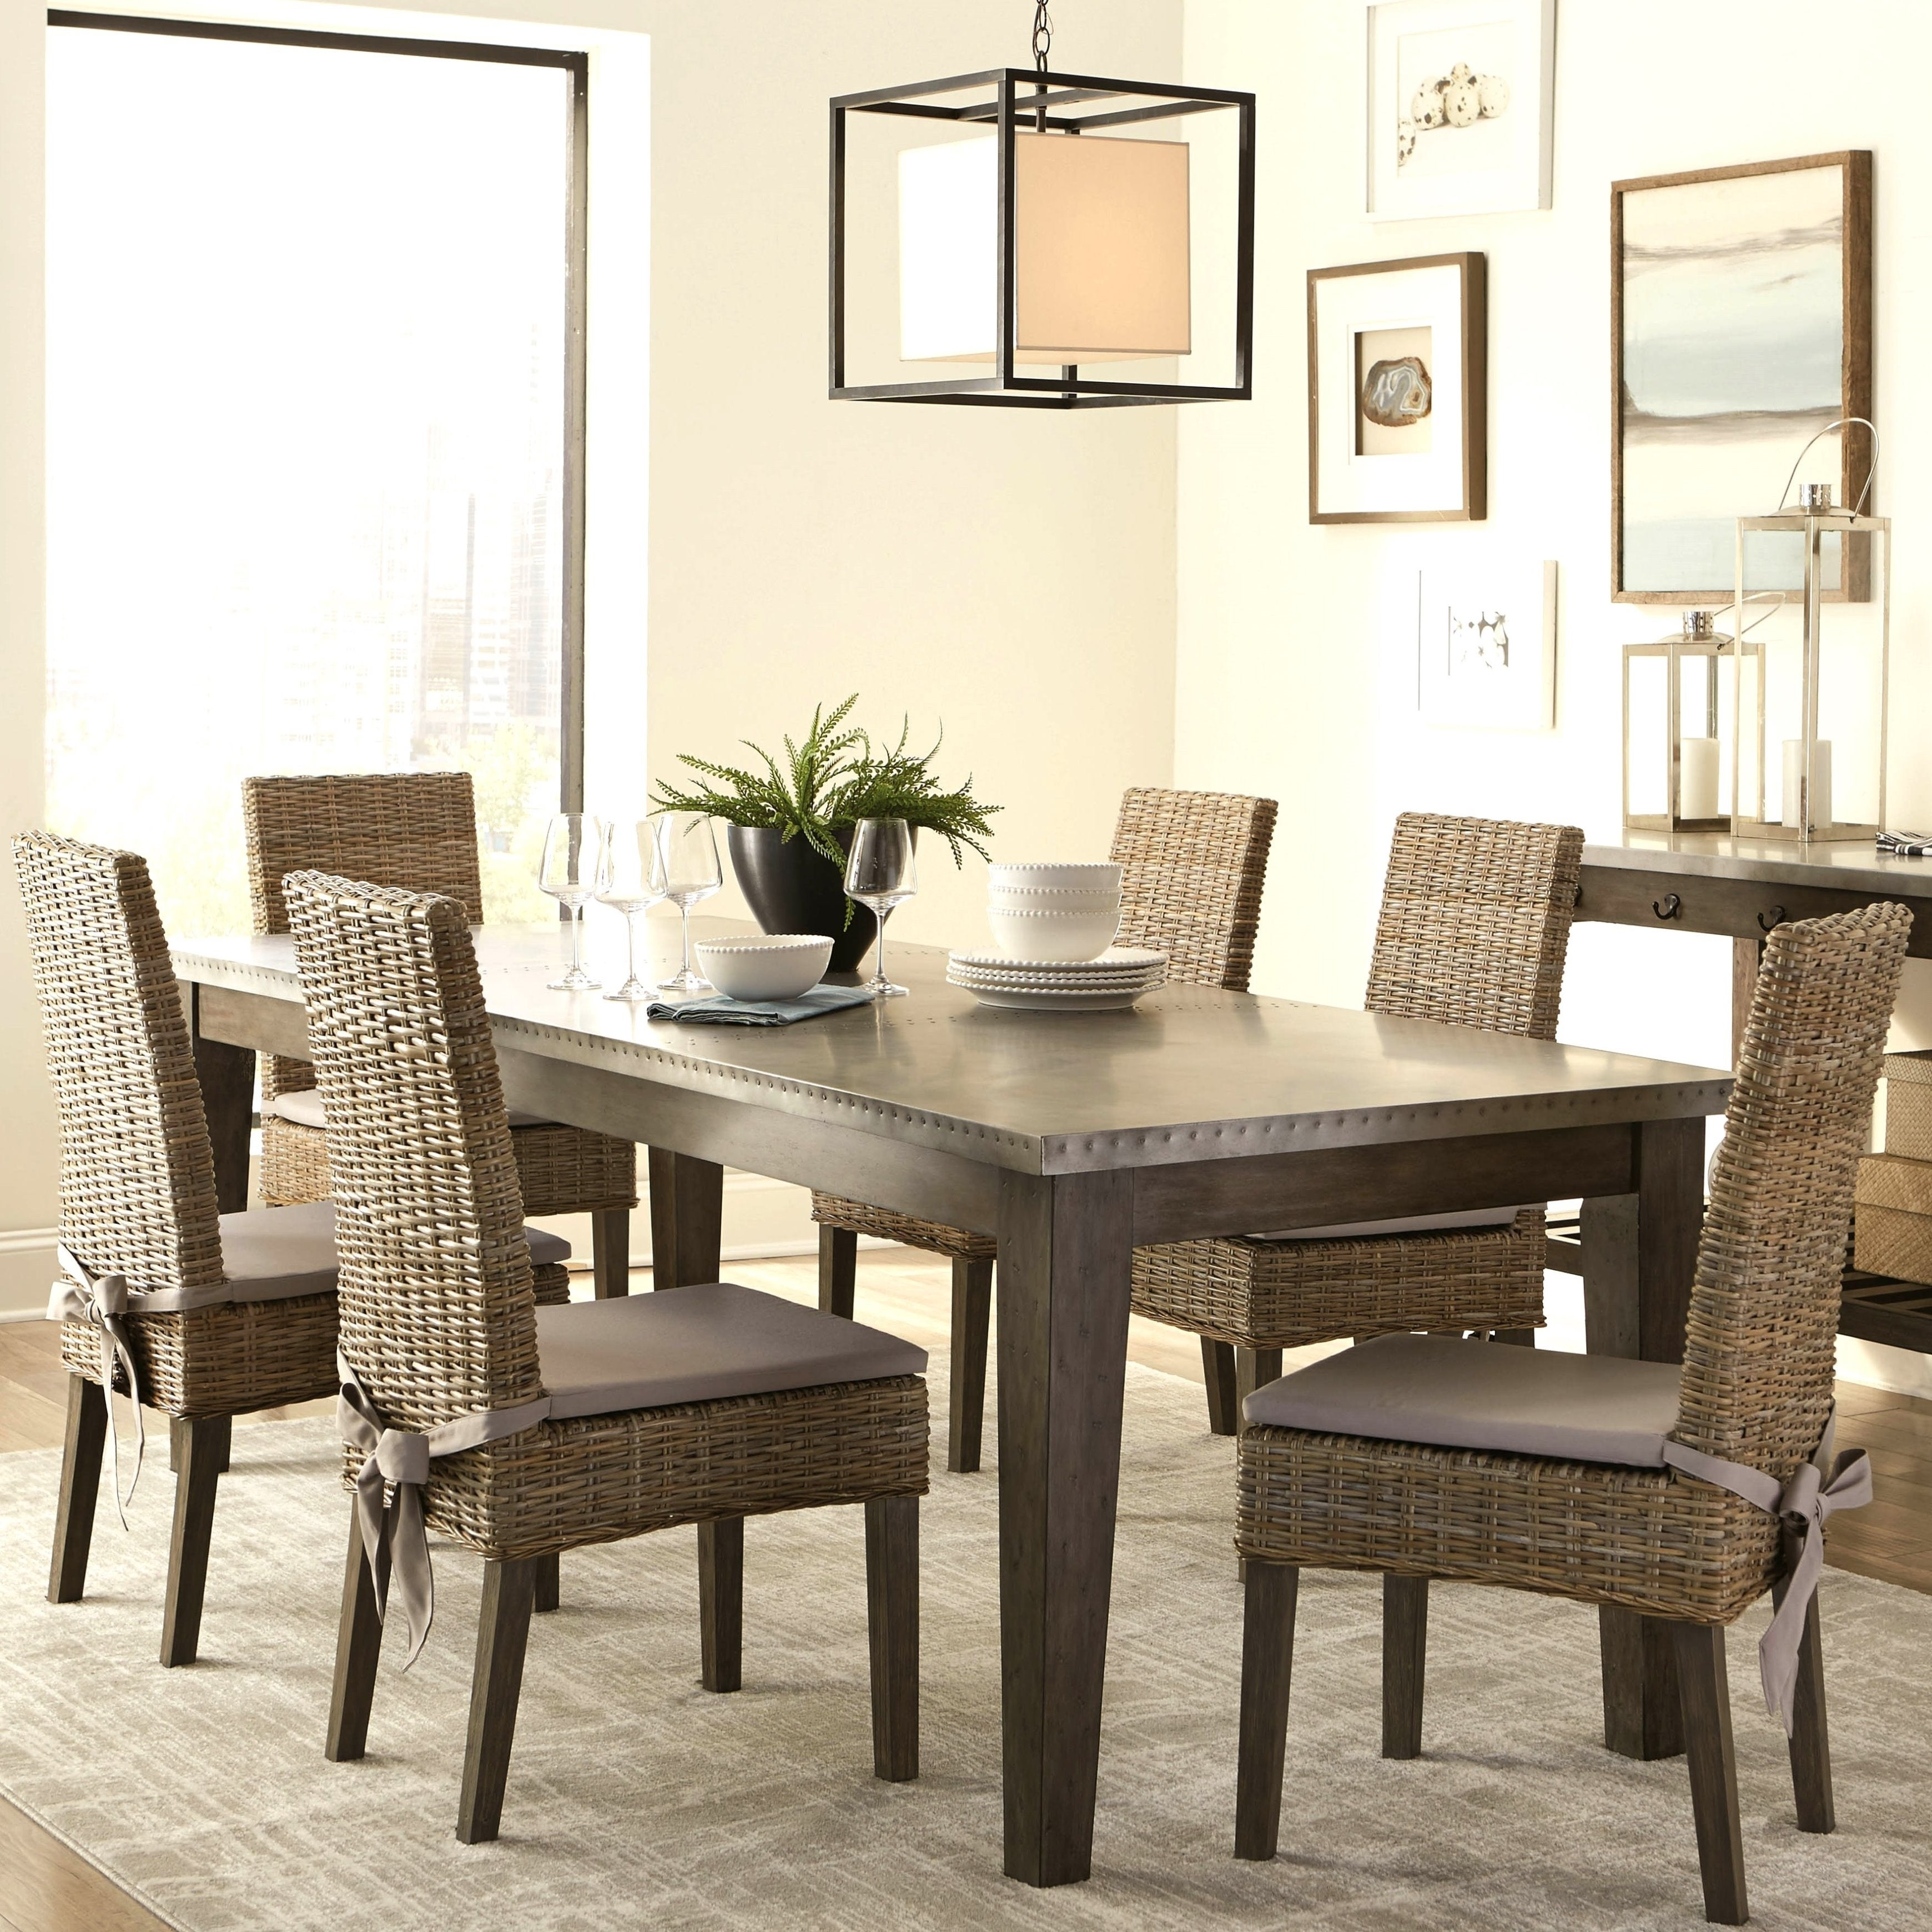 Rustic Industrial Design Metal Top Dining Set With Rattan Chairs And  Kitchen Island Cart   Free Shipping Today   Overstock   26062637